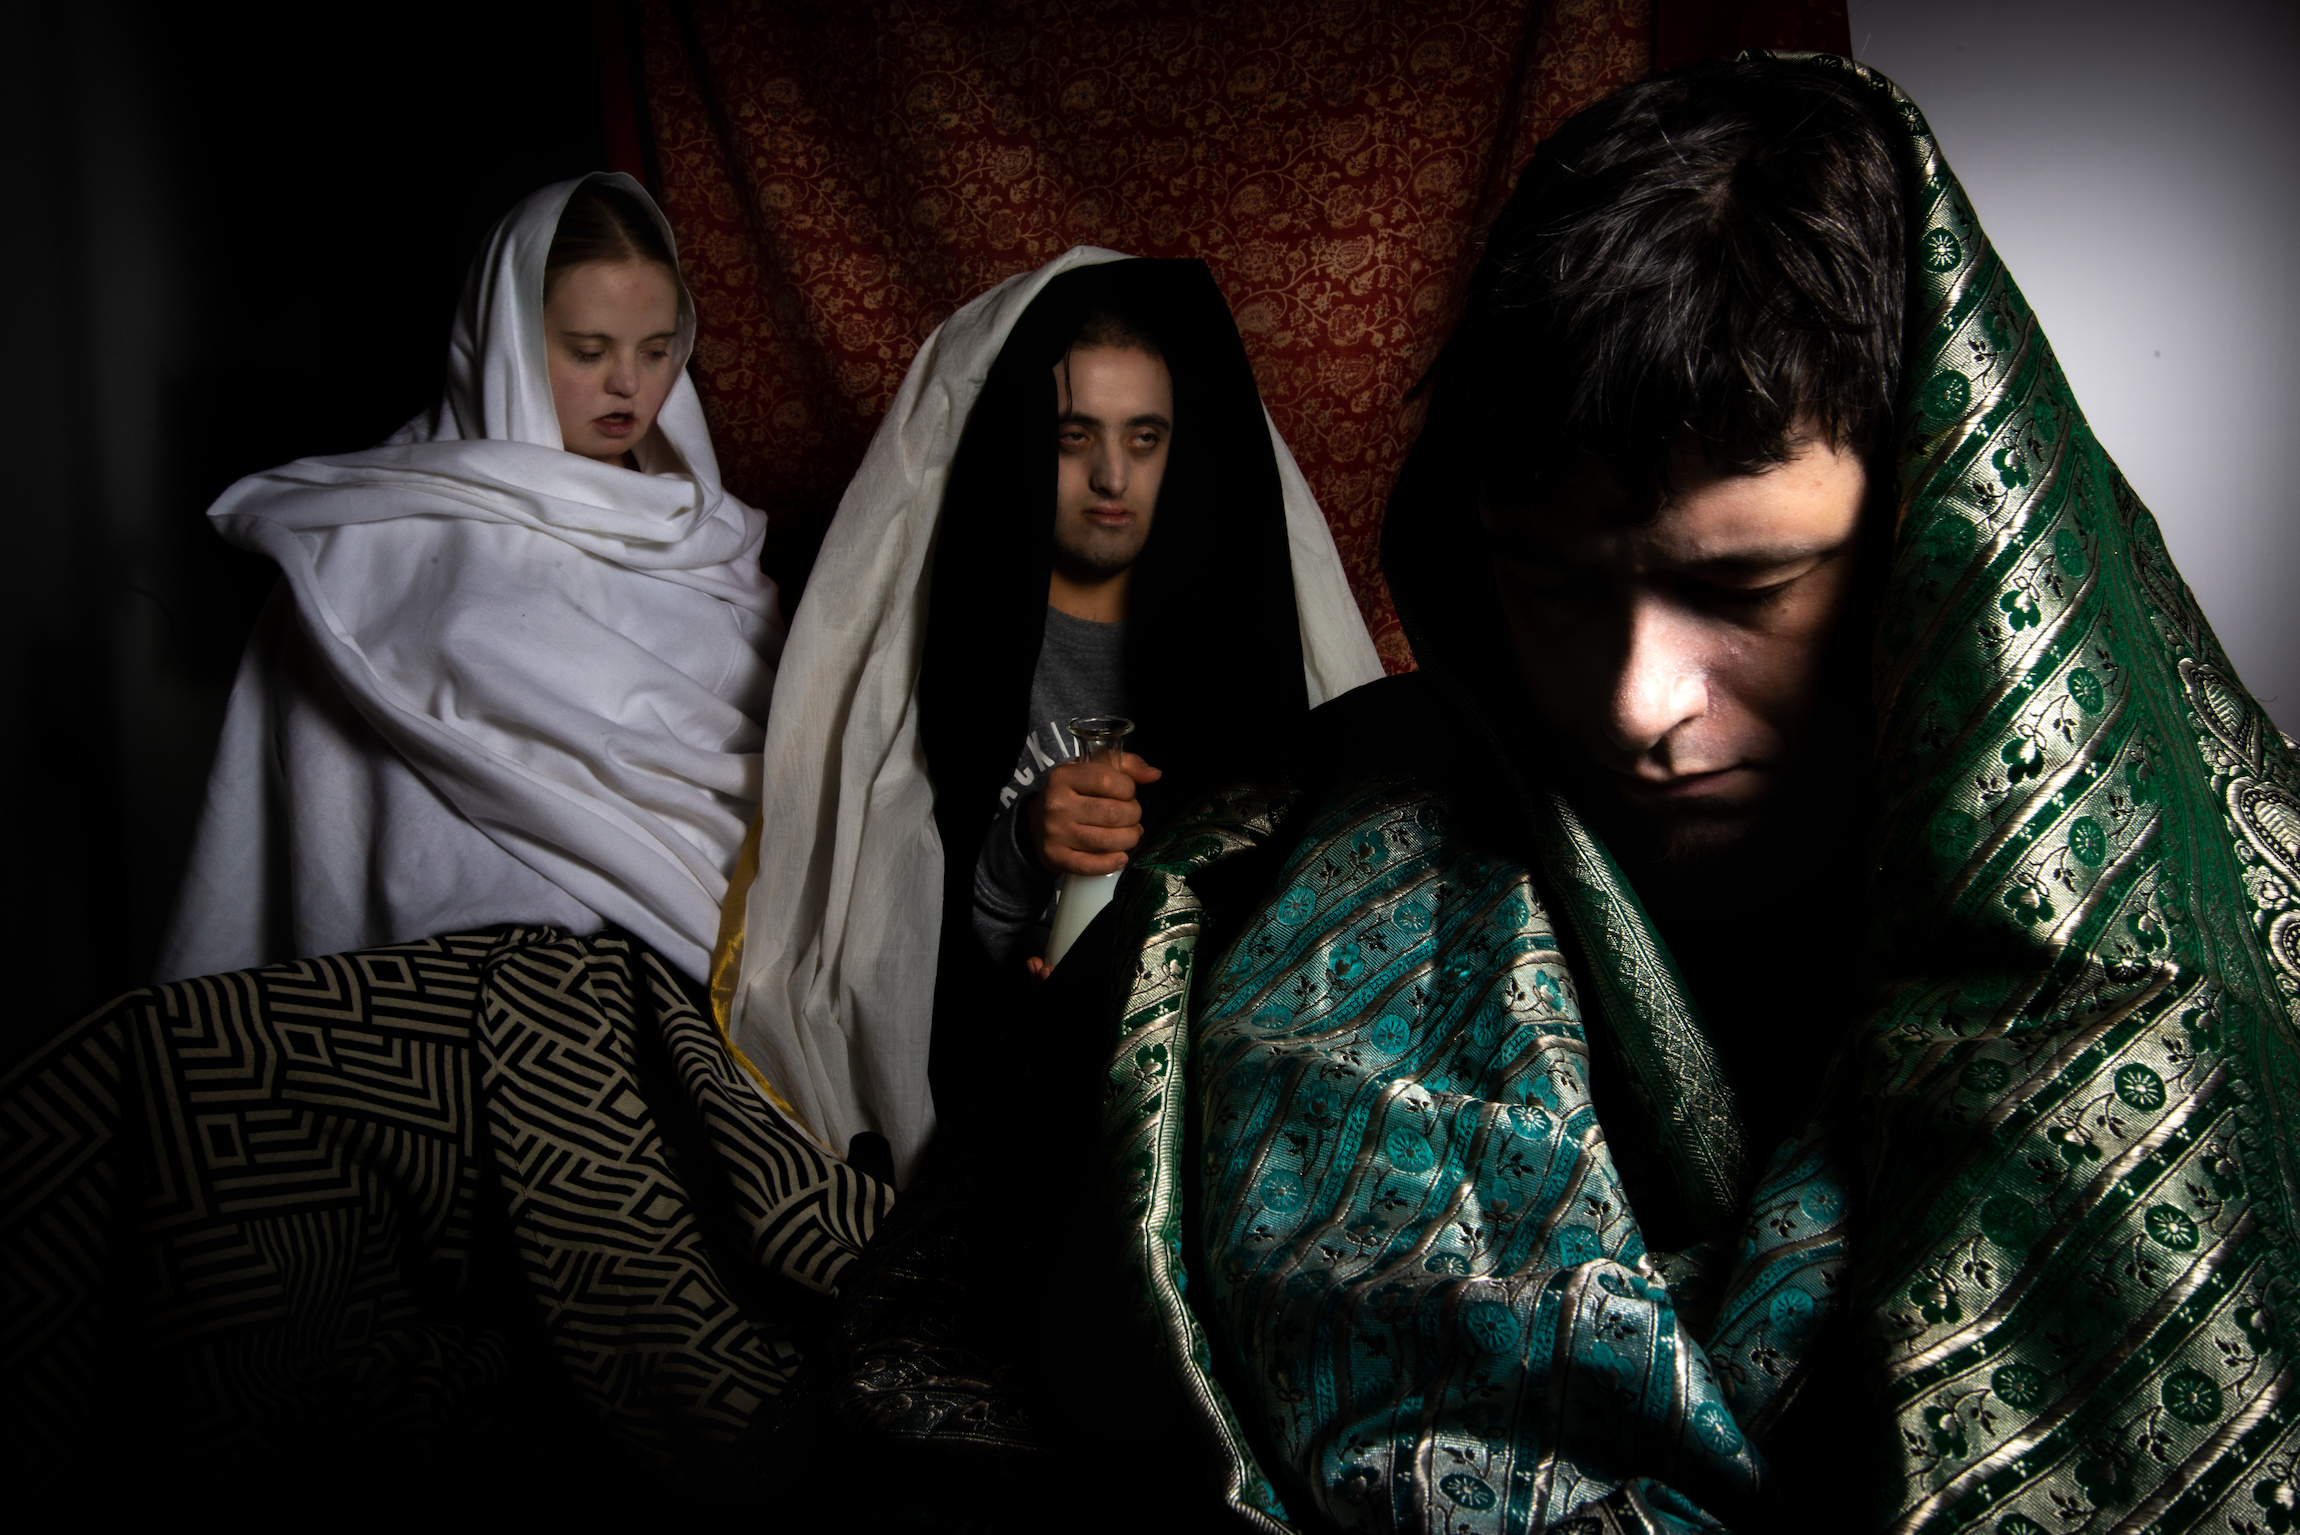 3 learning disabled people sit wrapped in shawls